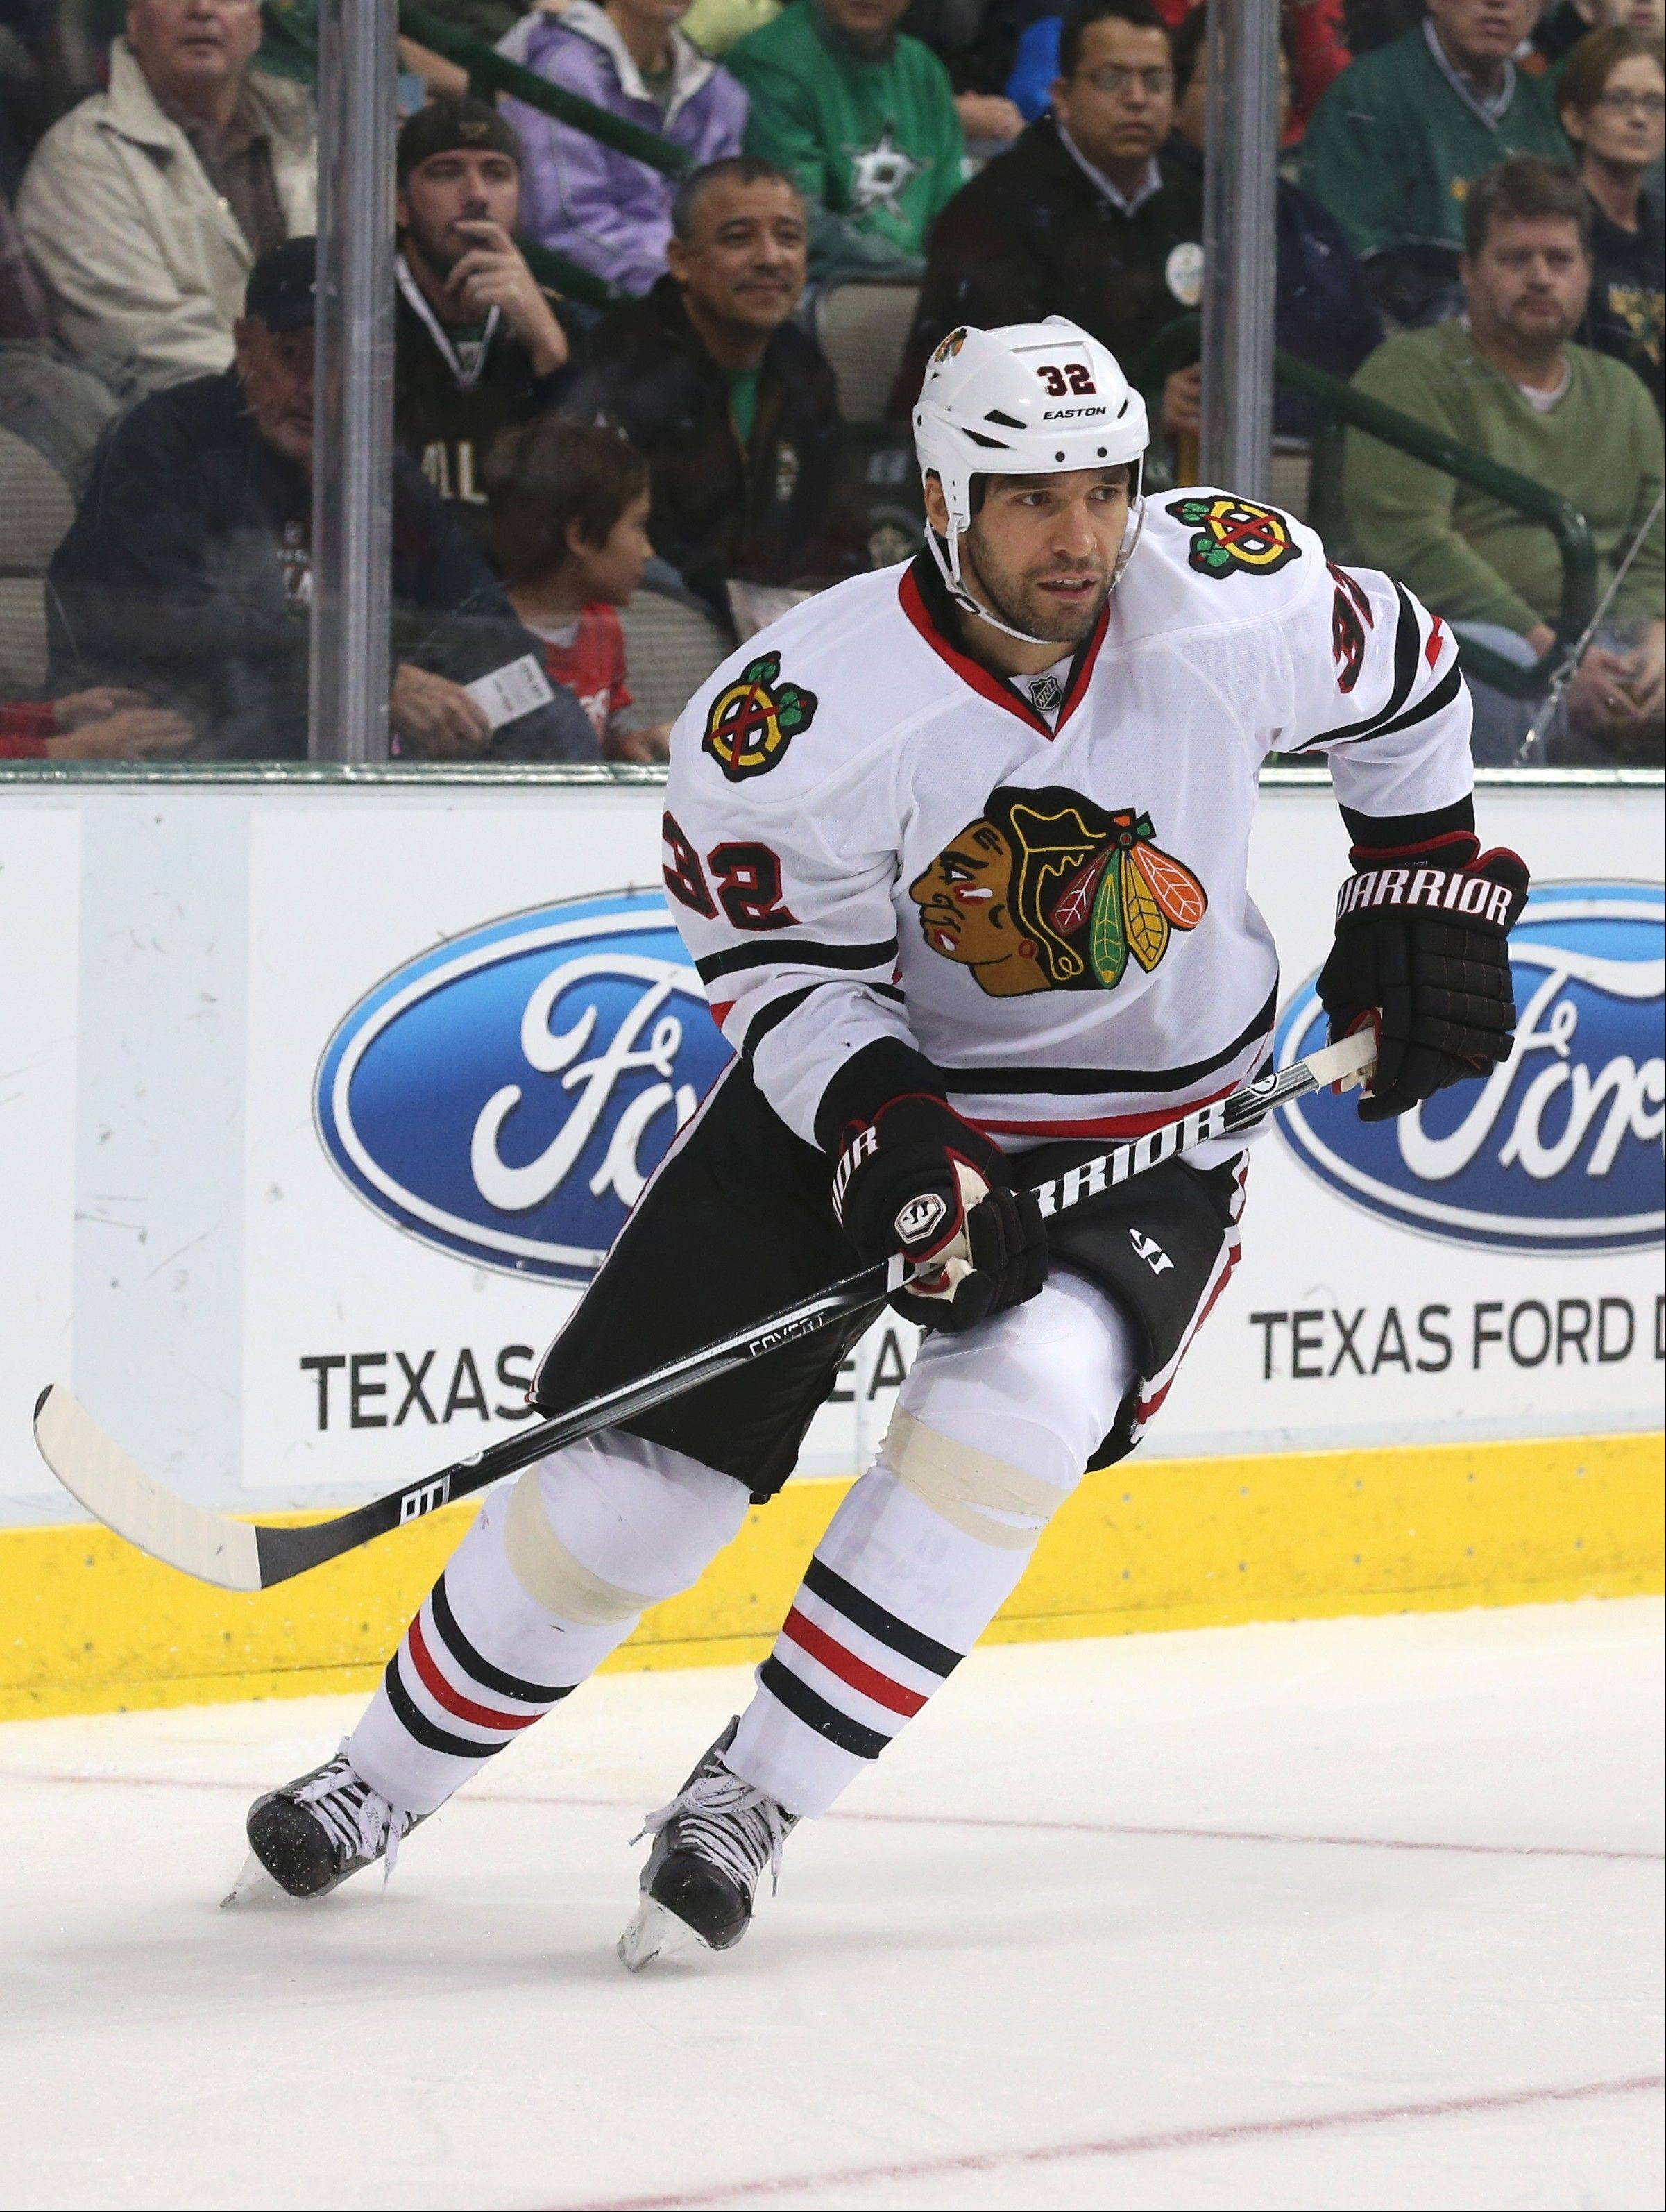 Hawks defenseman Michal Rozsival practiced Wednesday after a scary moment on the bench during Sunday�s victory over Edmonton.